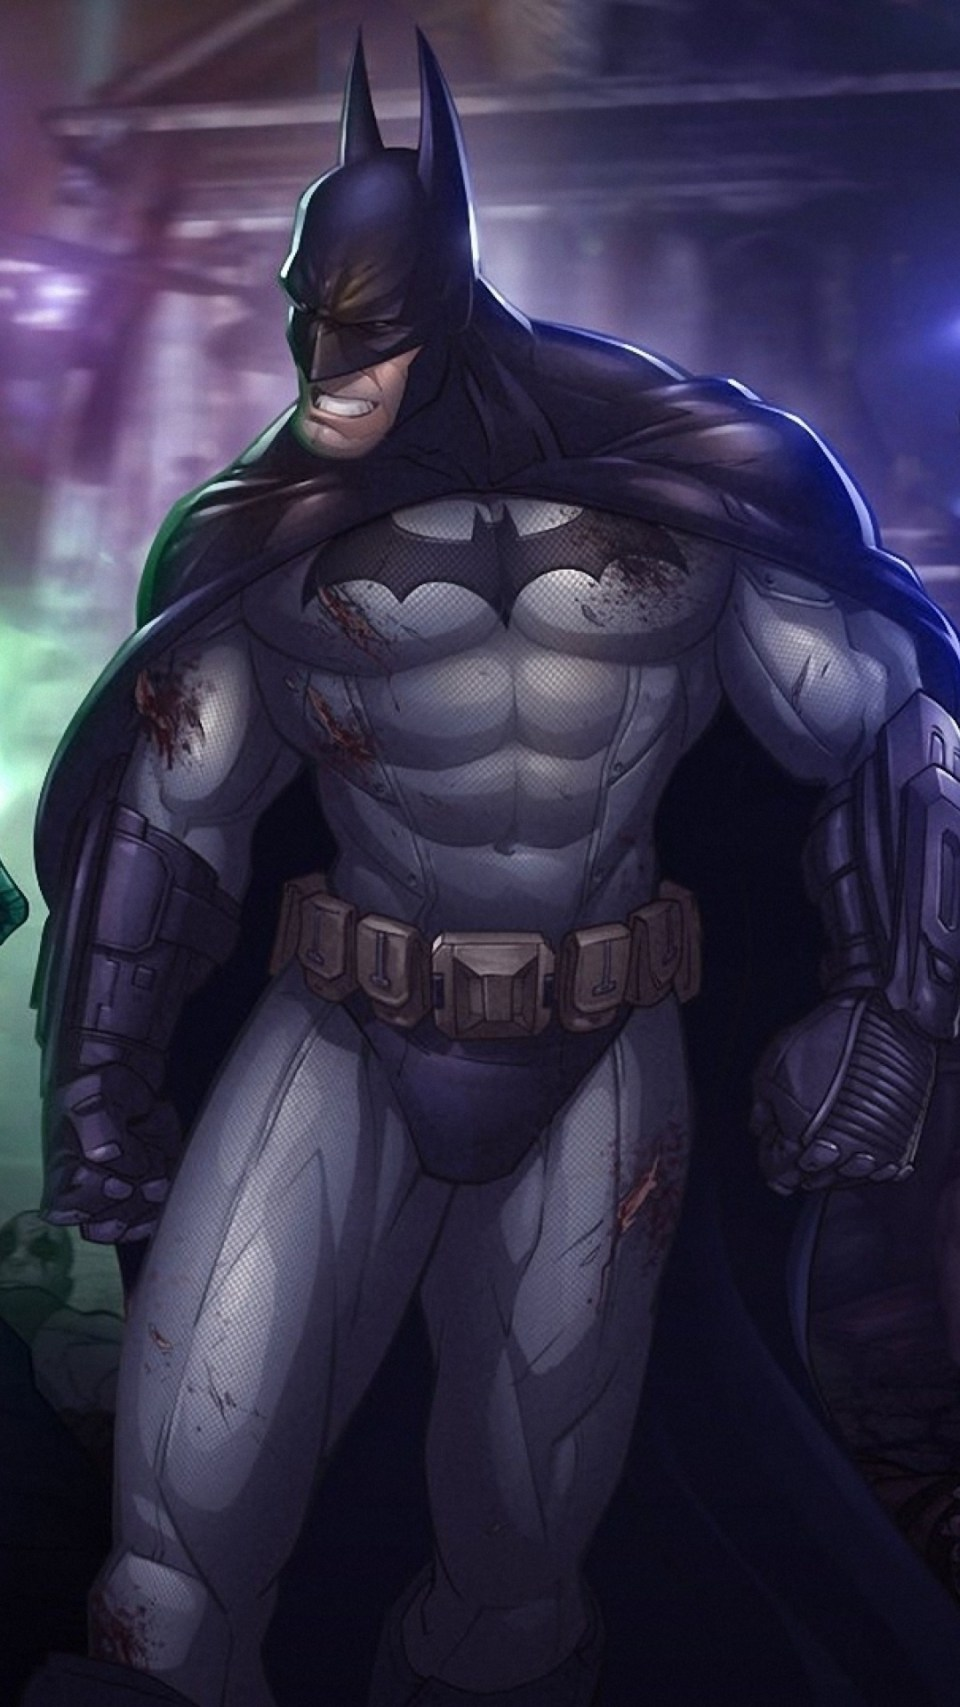 Batman-Arkham-City-1080x1920